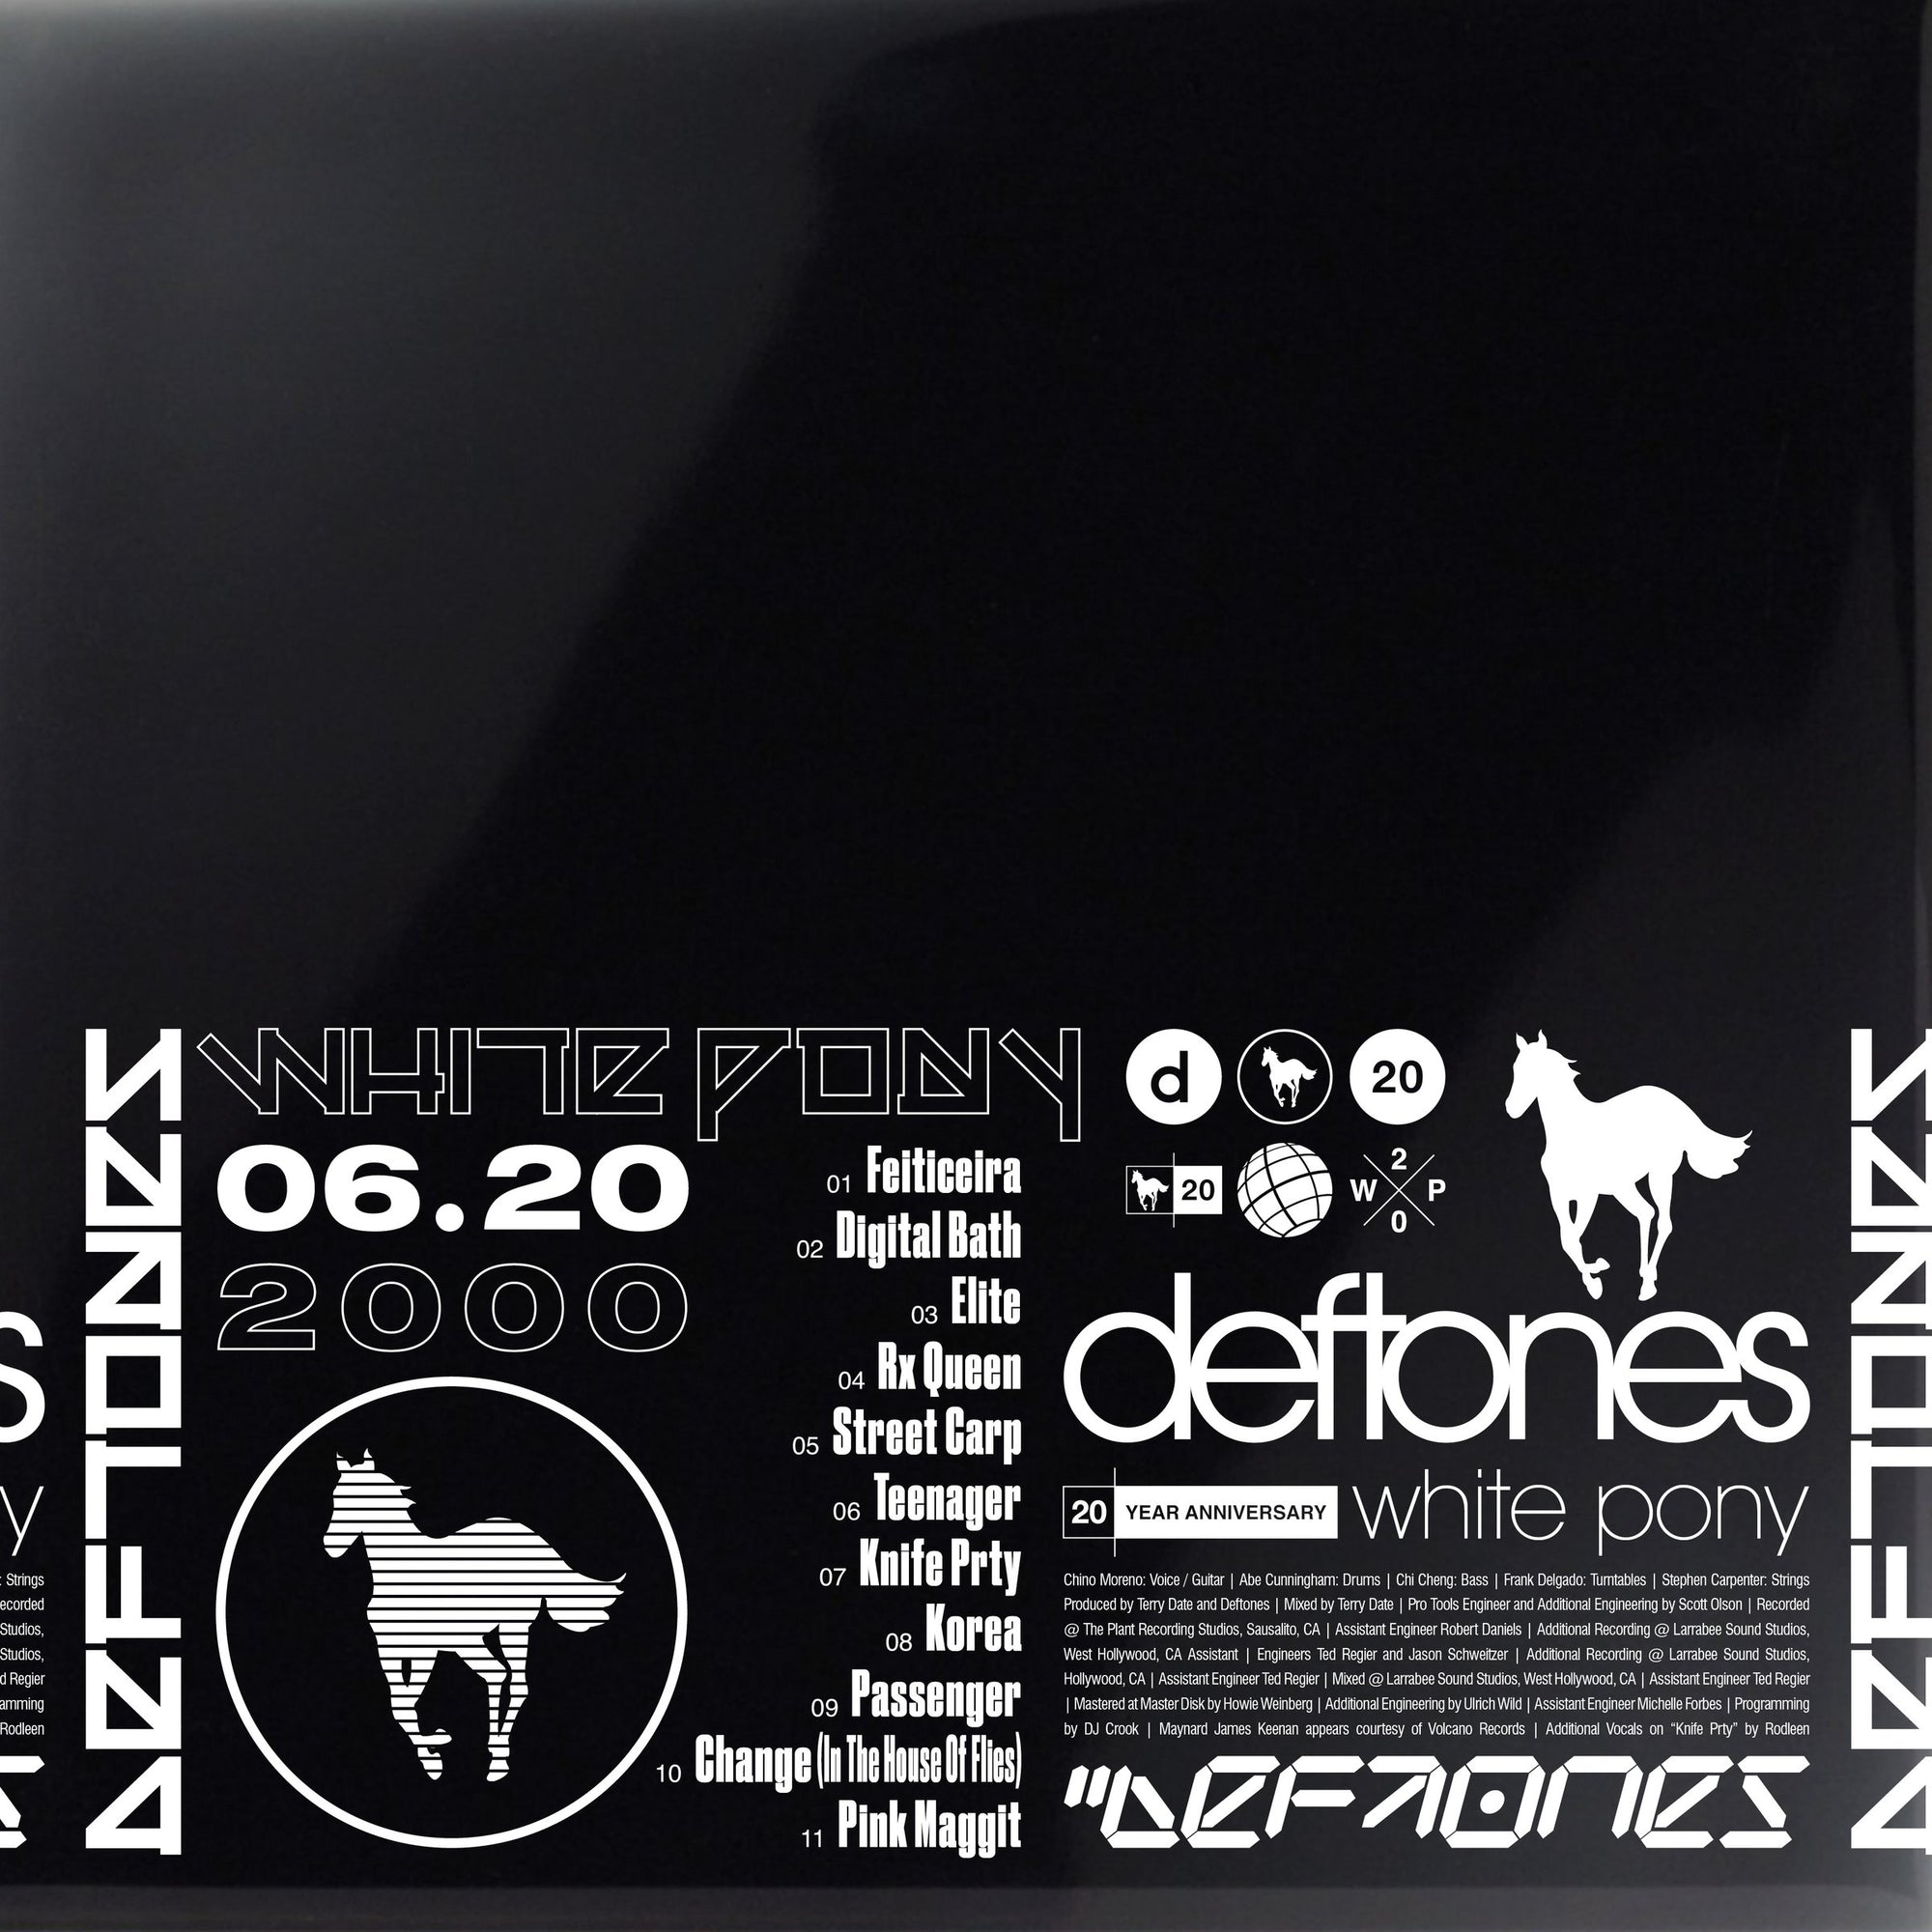 Deftones - White Pony: 20th Anniversary (Exclusive 4LP White Vinyl & Print) [Vinyl]